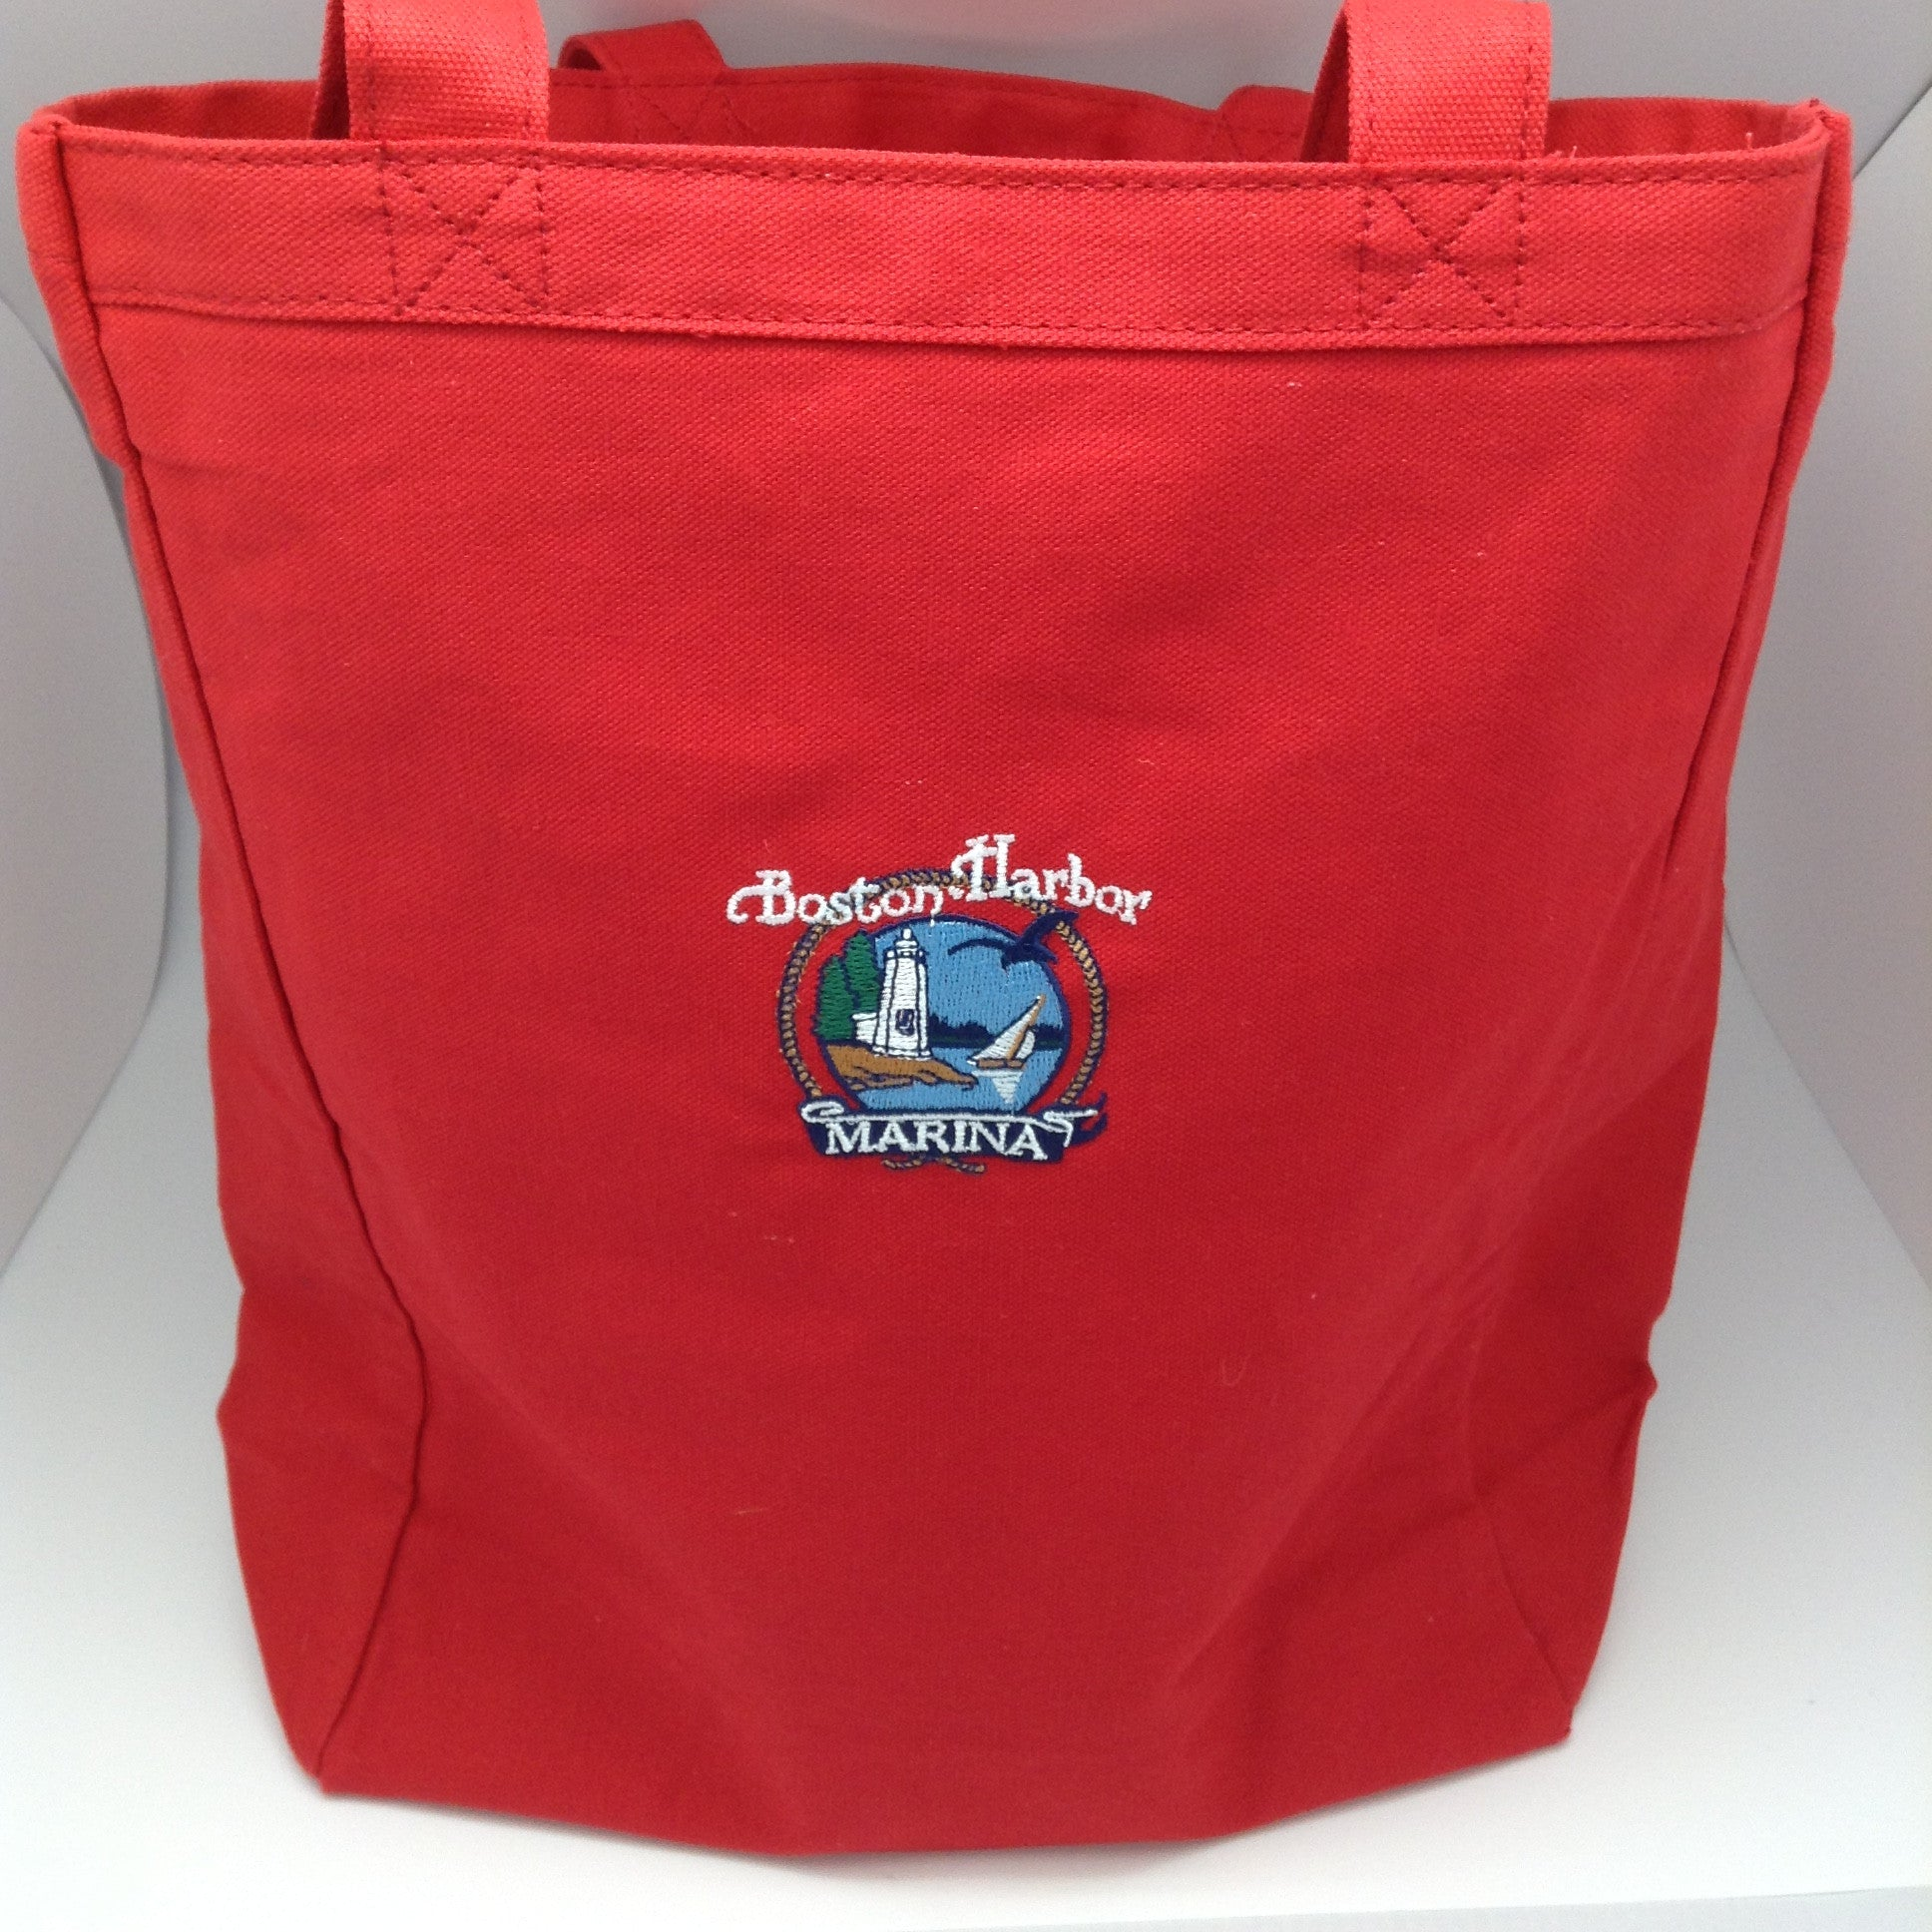 Boston Harbor - Canvas Tote - Red